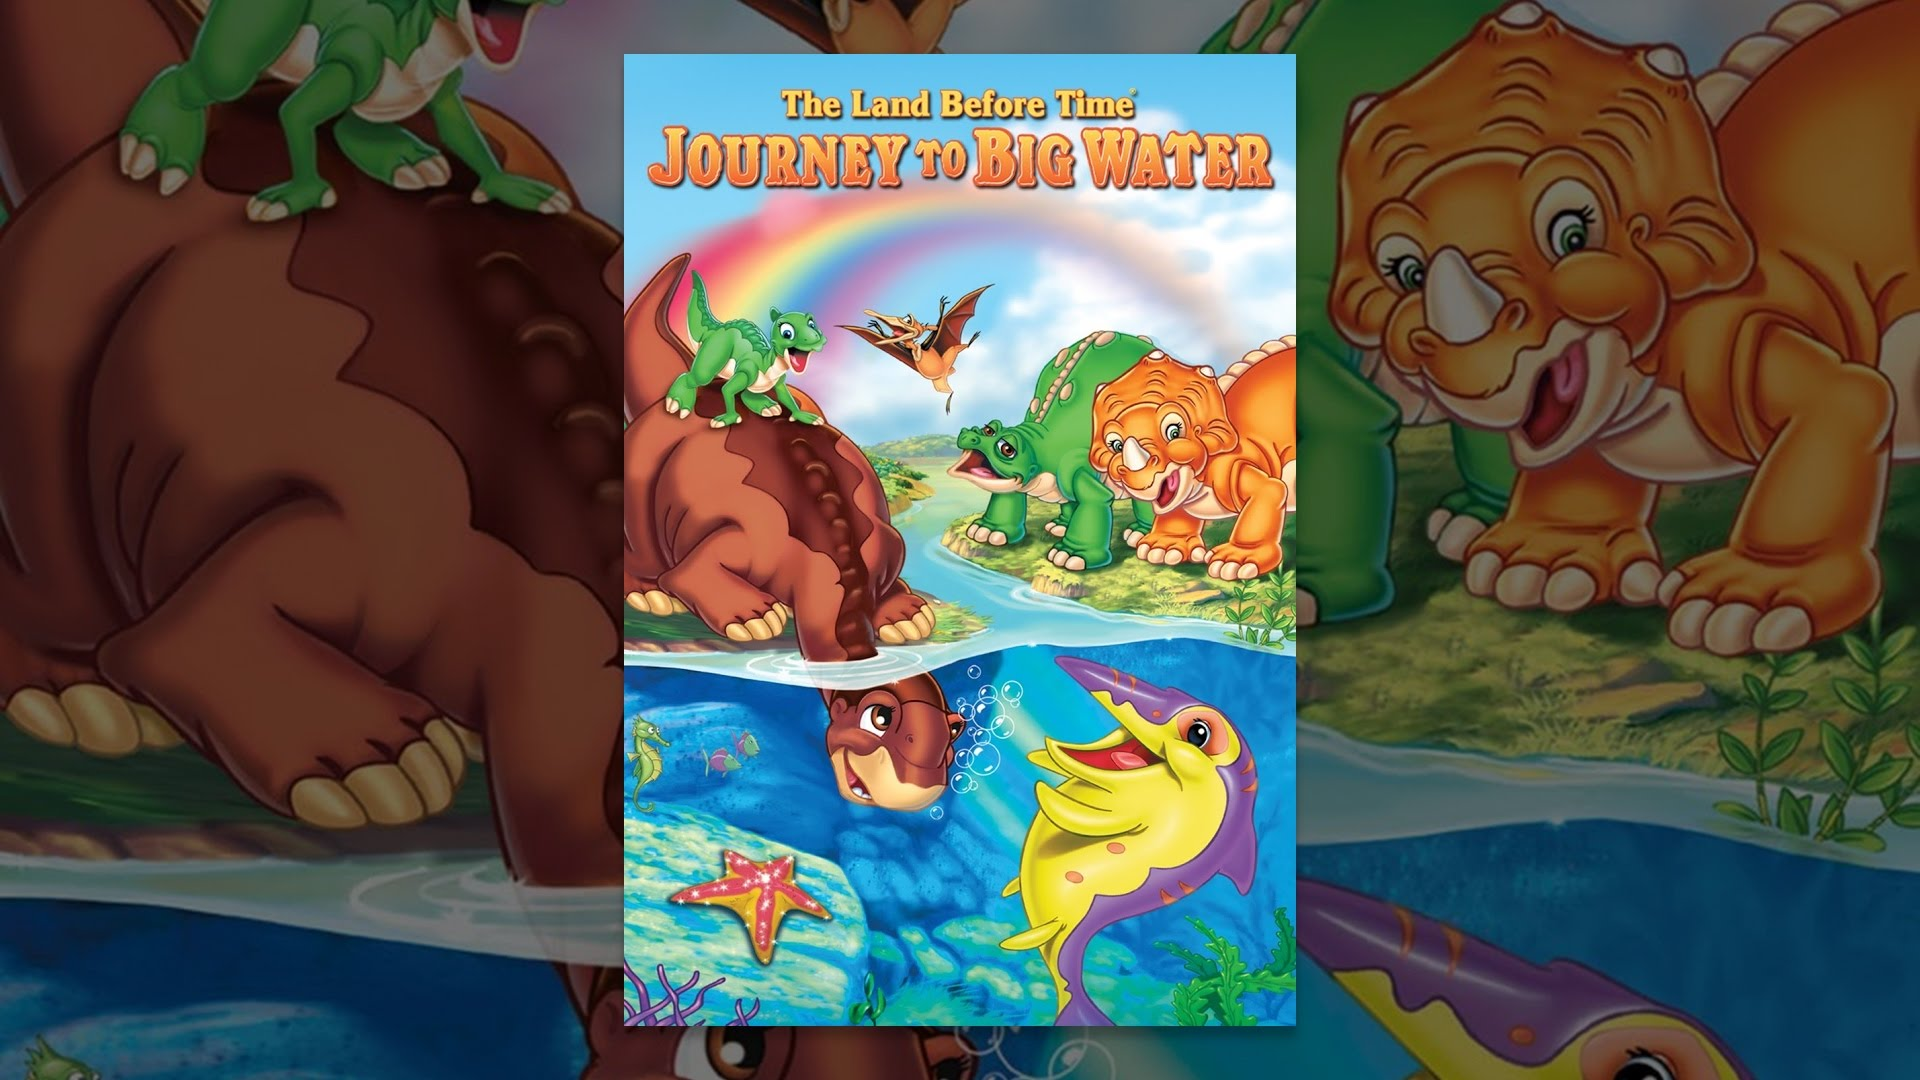 The Land Before Time IX: Journey to Big Water - YouTube